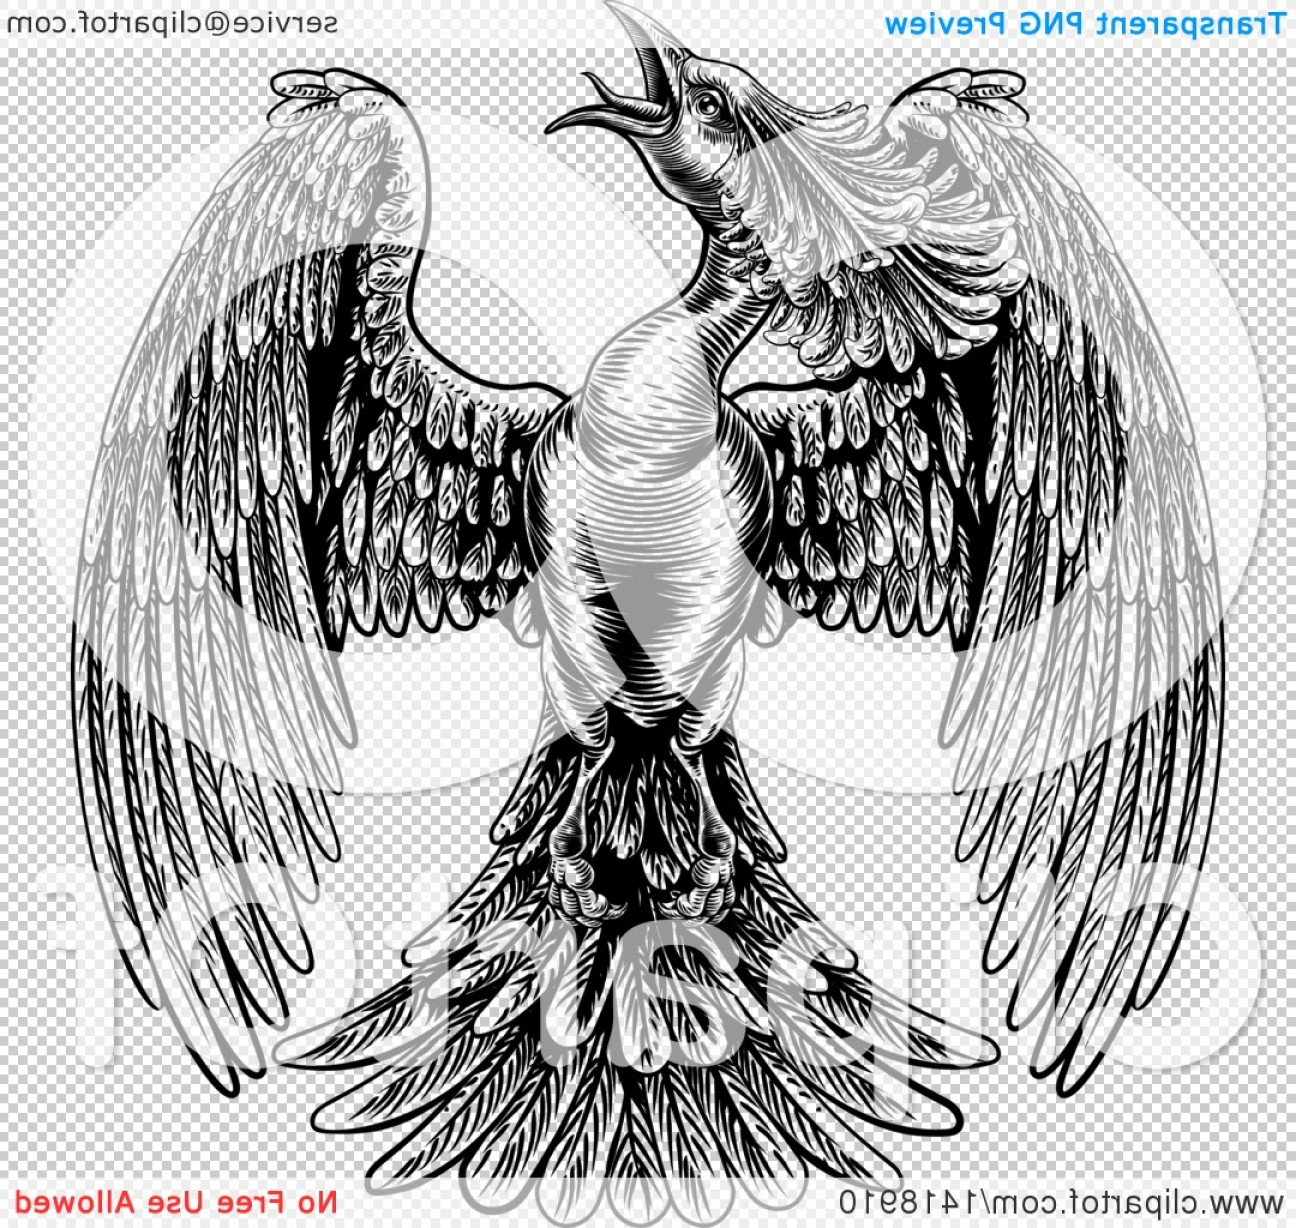 Firebird Vector Transparent Background: Black And White Woodcut Or Engraved Styled Phoenix Firebird